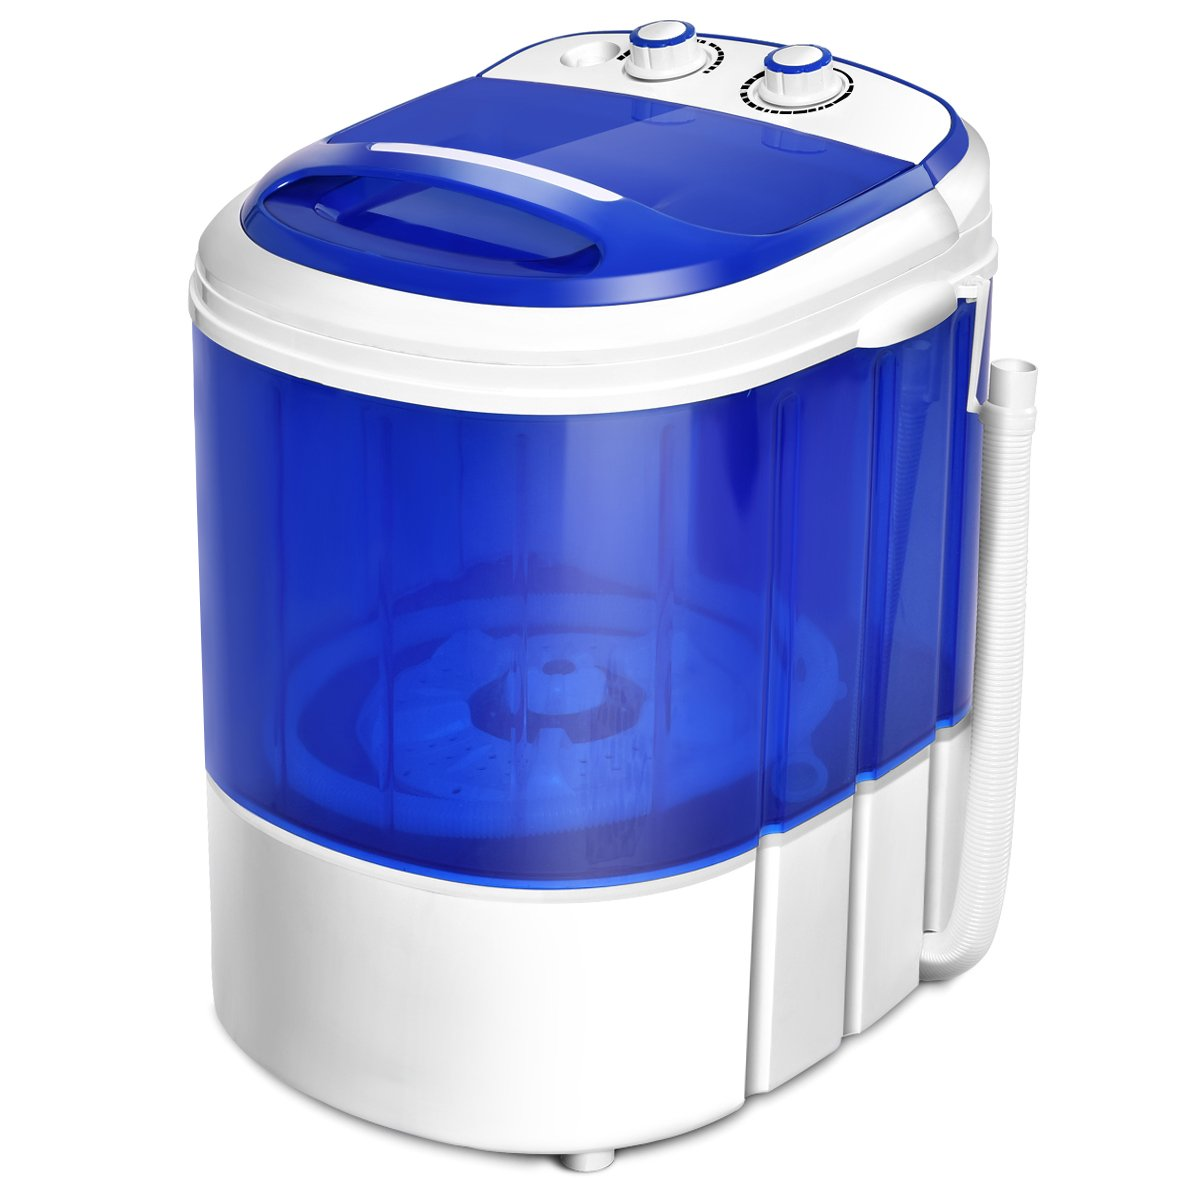 COSTWAY Mini Portable Washing Machine for Compact Laundry, Small Semi-Automatic Compact Washer with Timer Control Single Translucent Tub 7lbs Capacity (Blue and White)